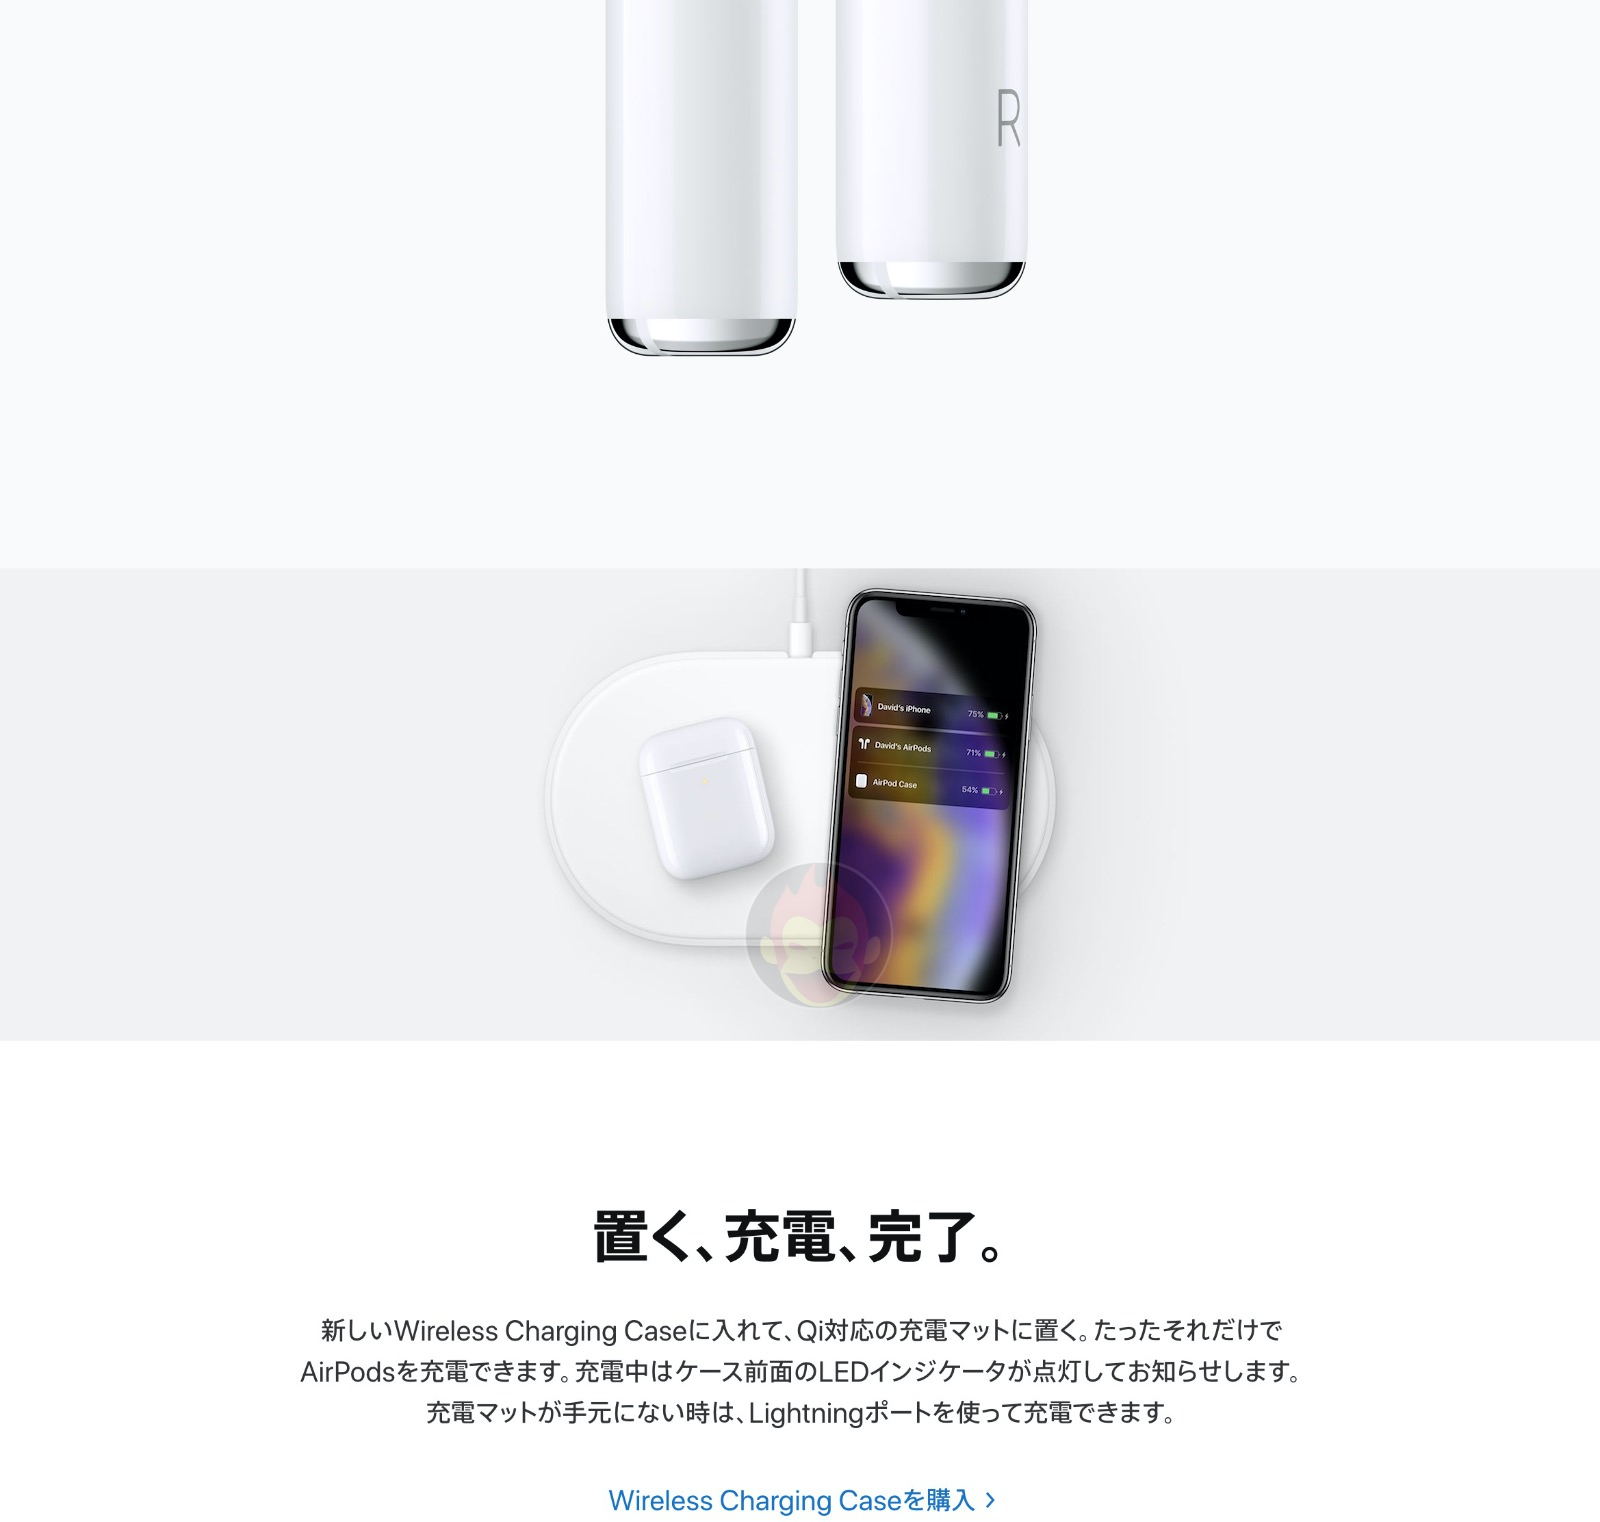 AirPods Japan Site Image